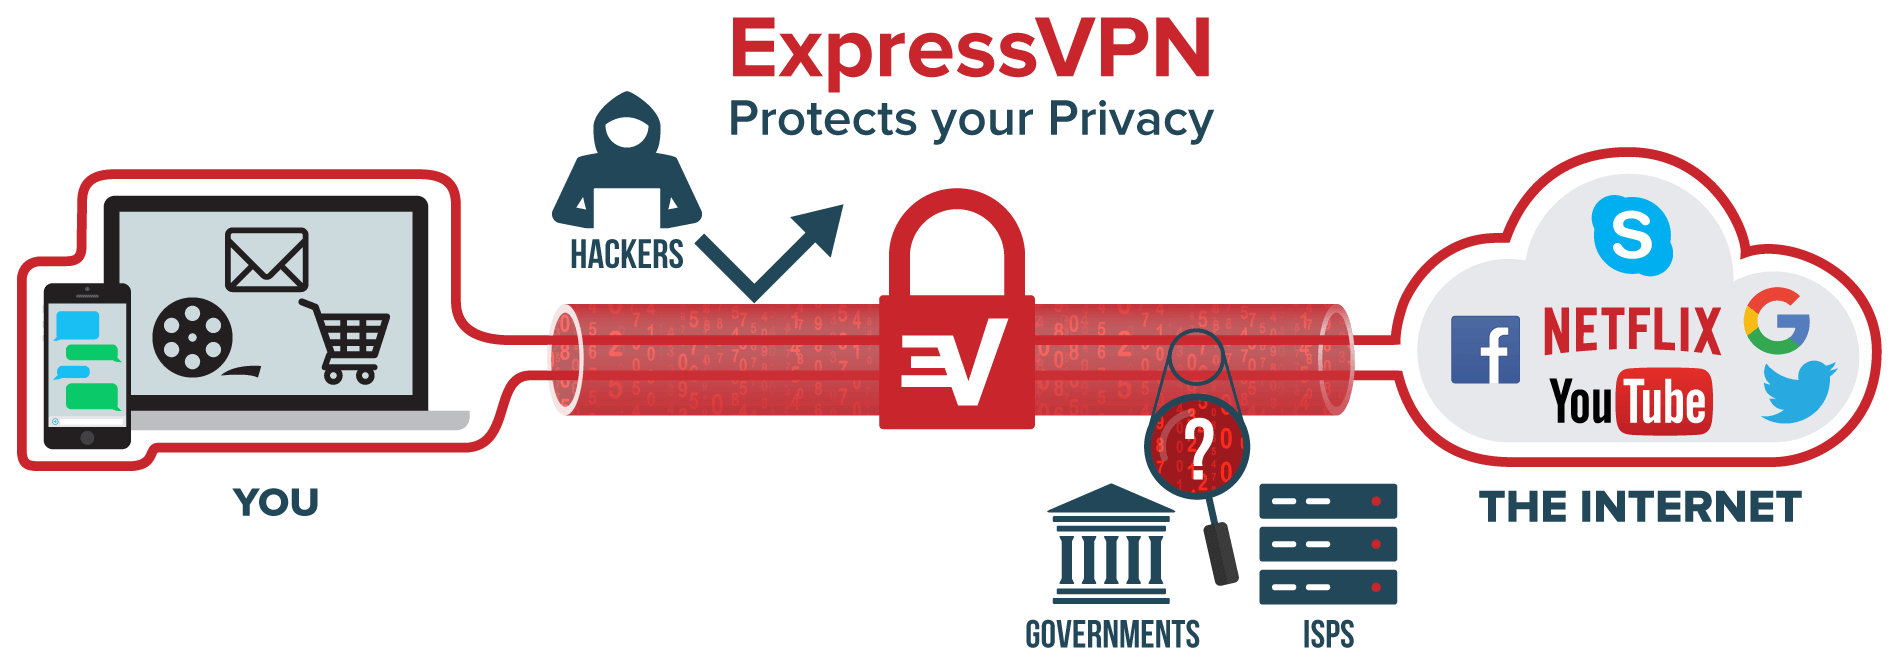 ExpressVPN protects your privacy while you use Fire TV